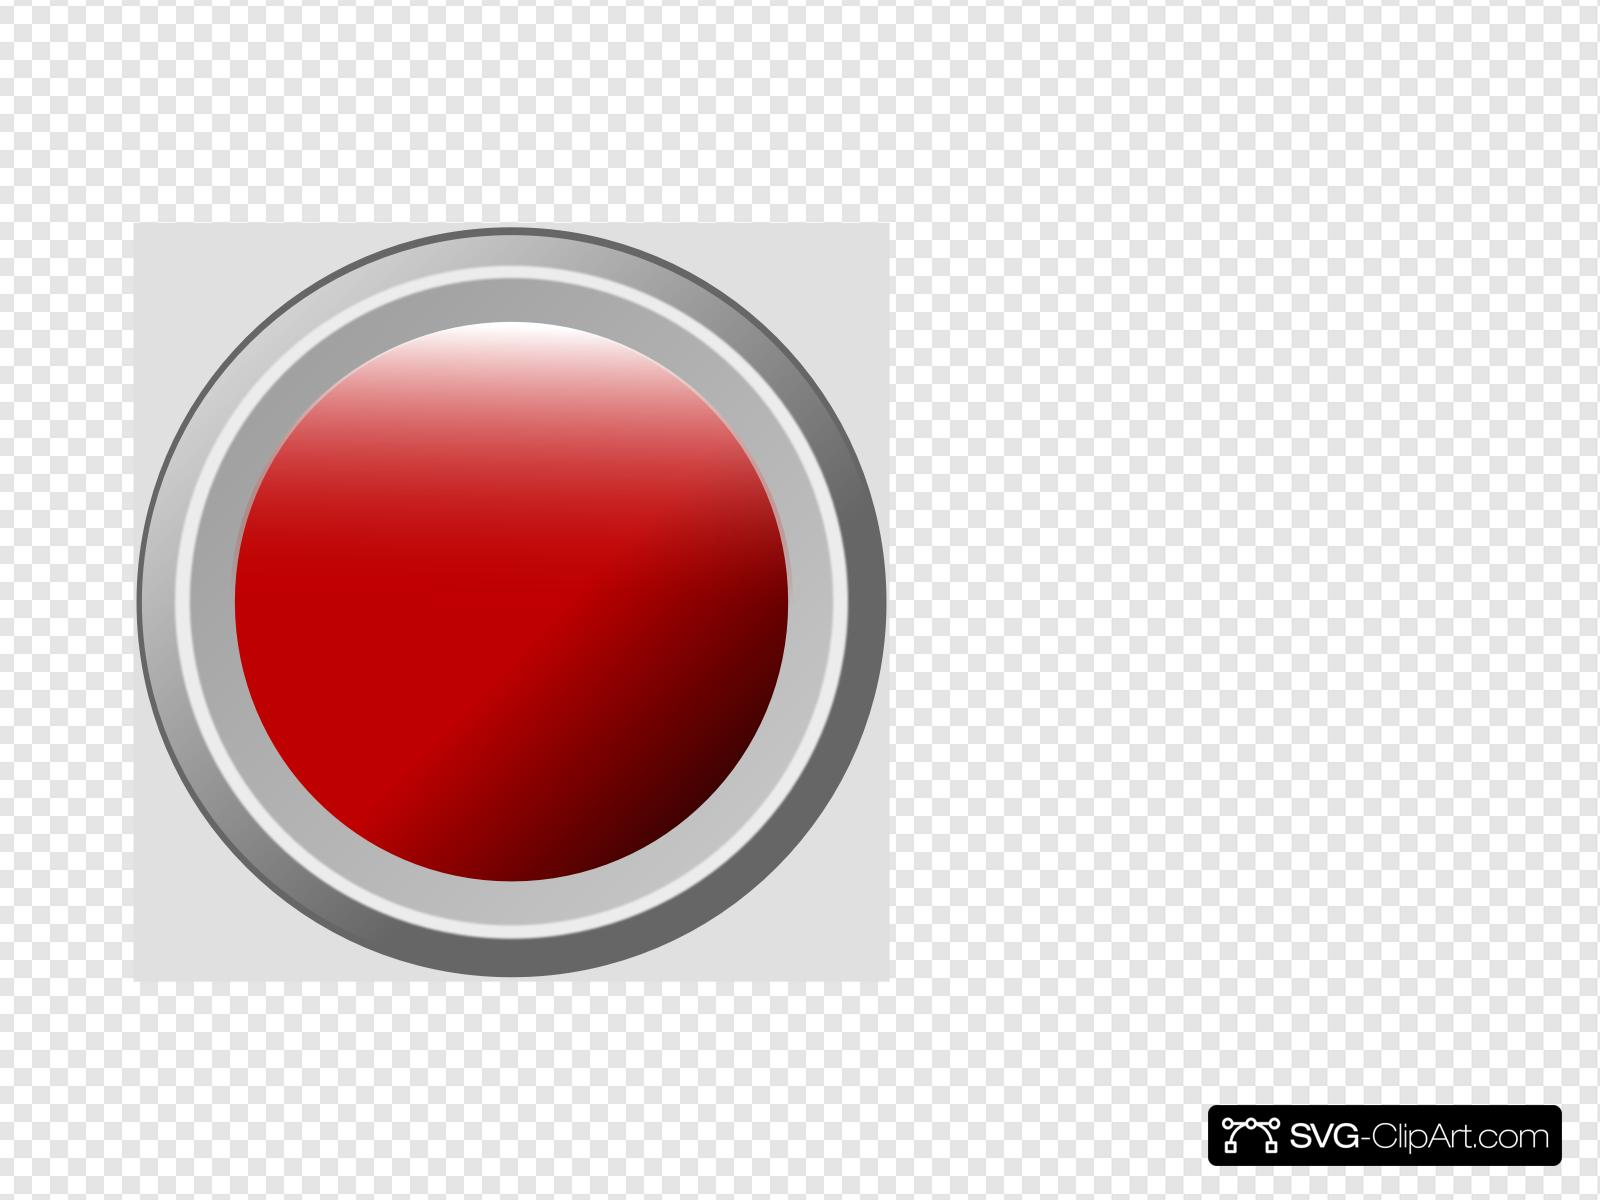 Red Pb Pushed Clip art, Icon and SVG.